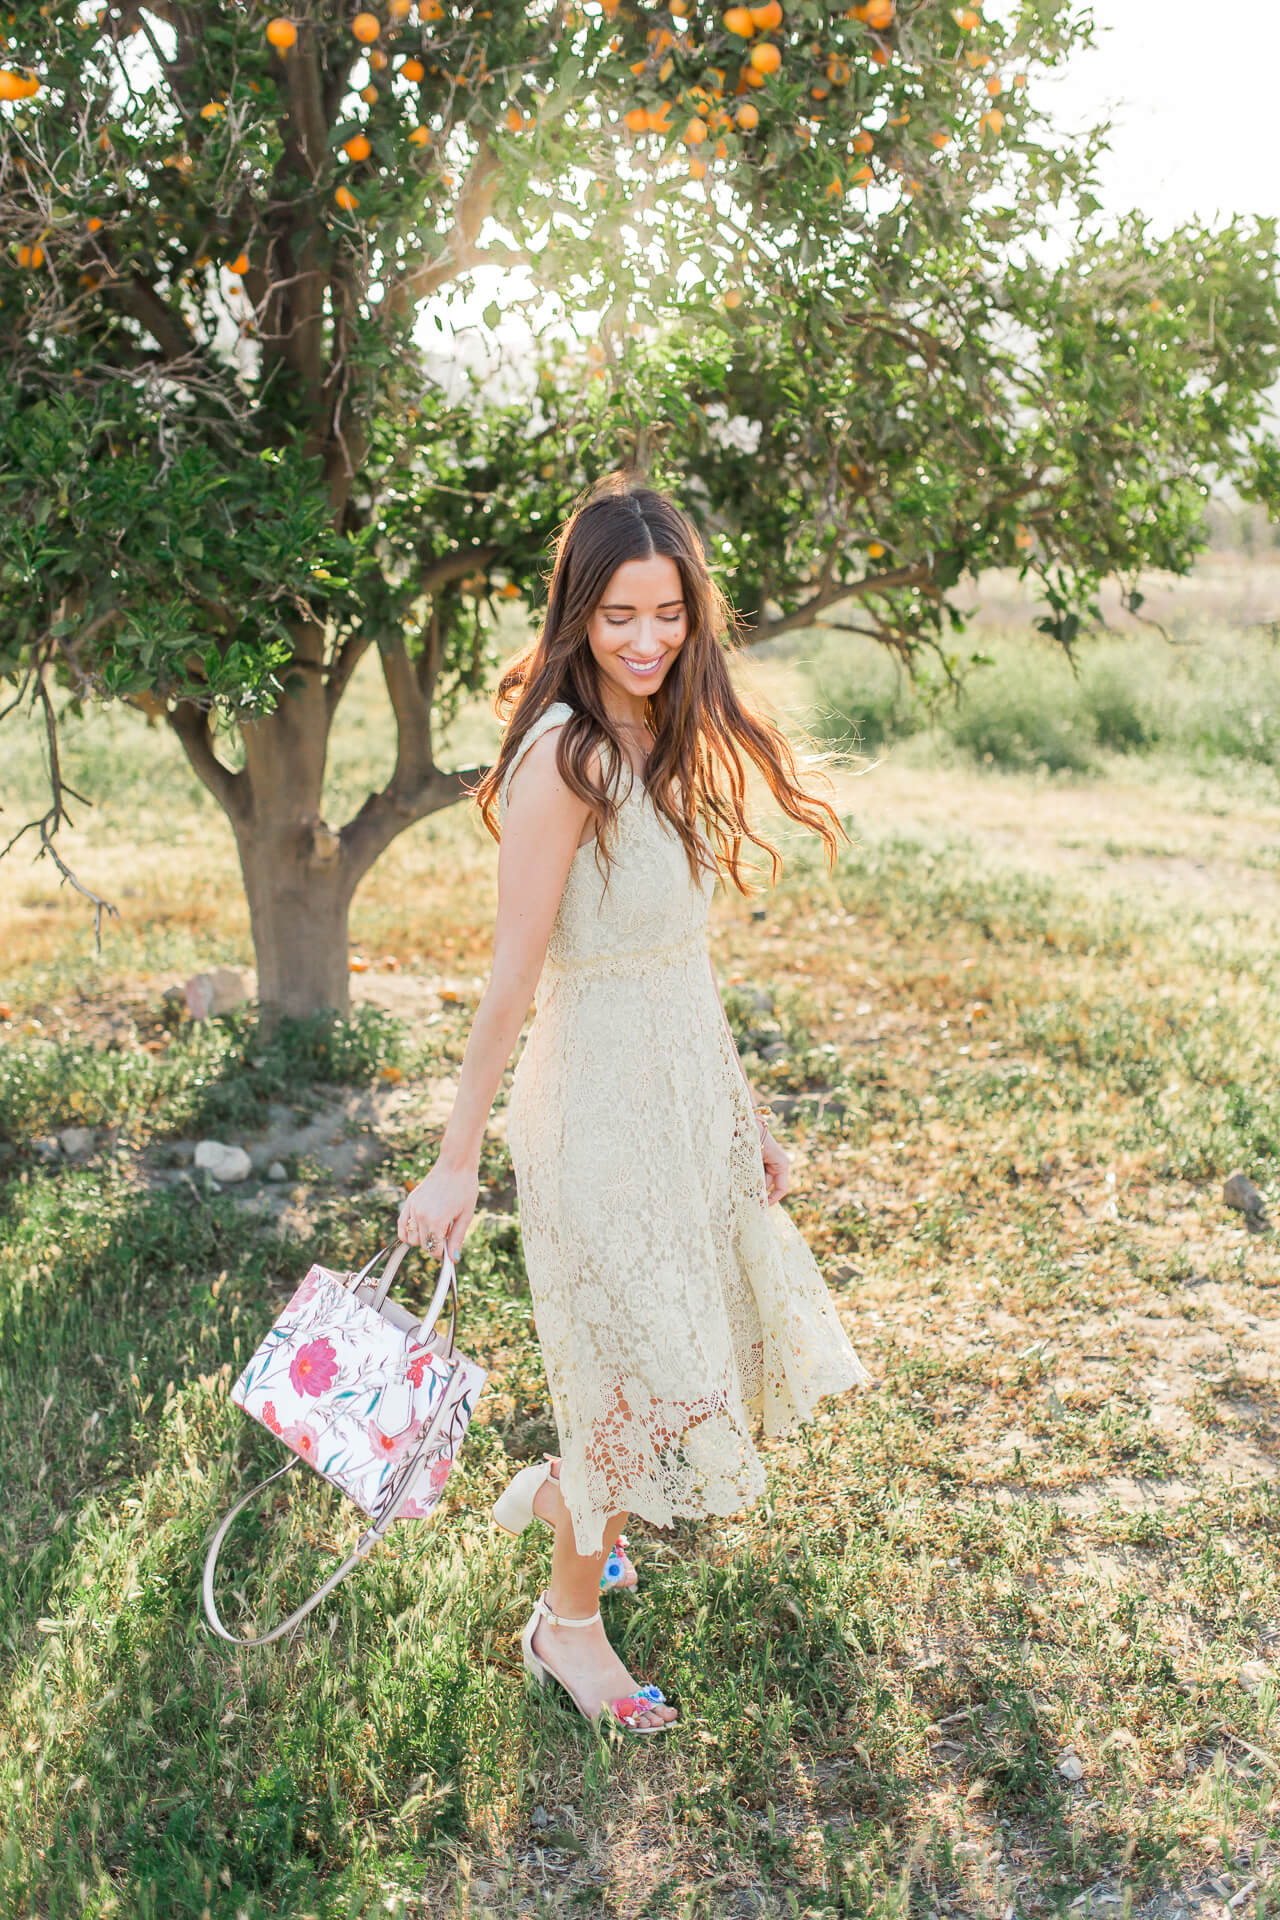 feminine and classic style - outfit inspiration for spring from M Loves M Orange County blogger